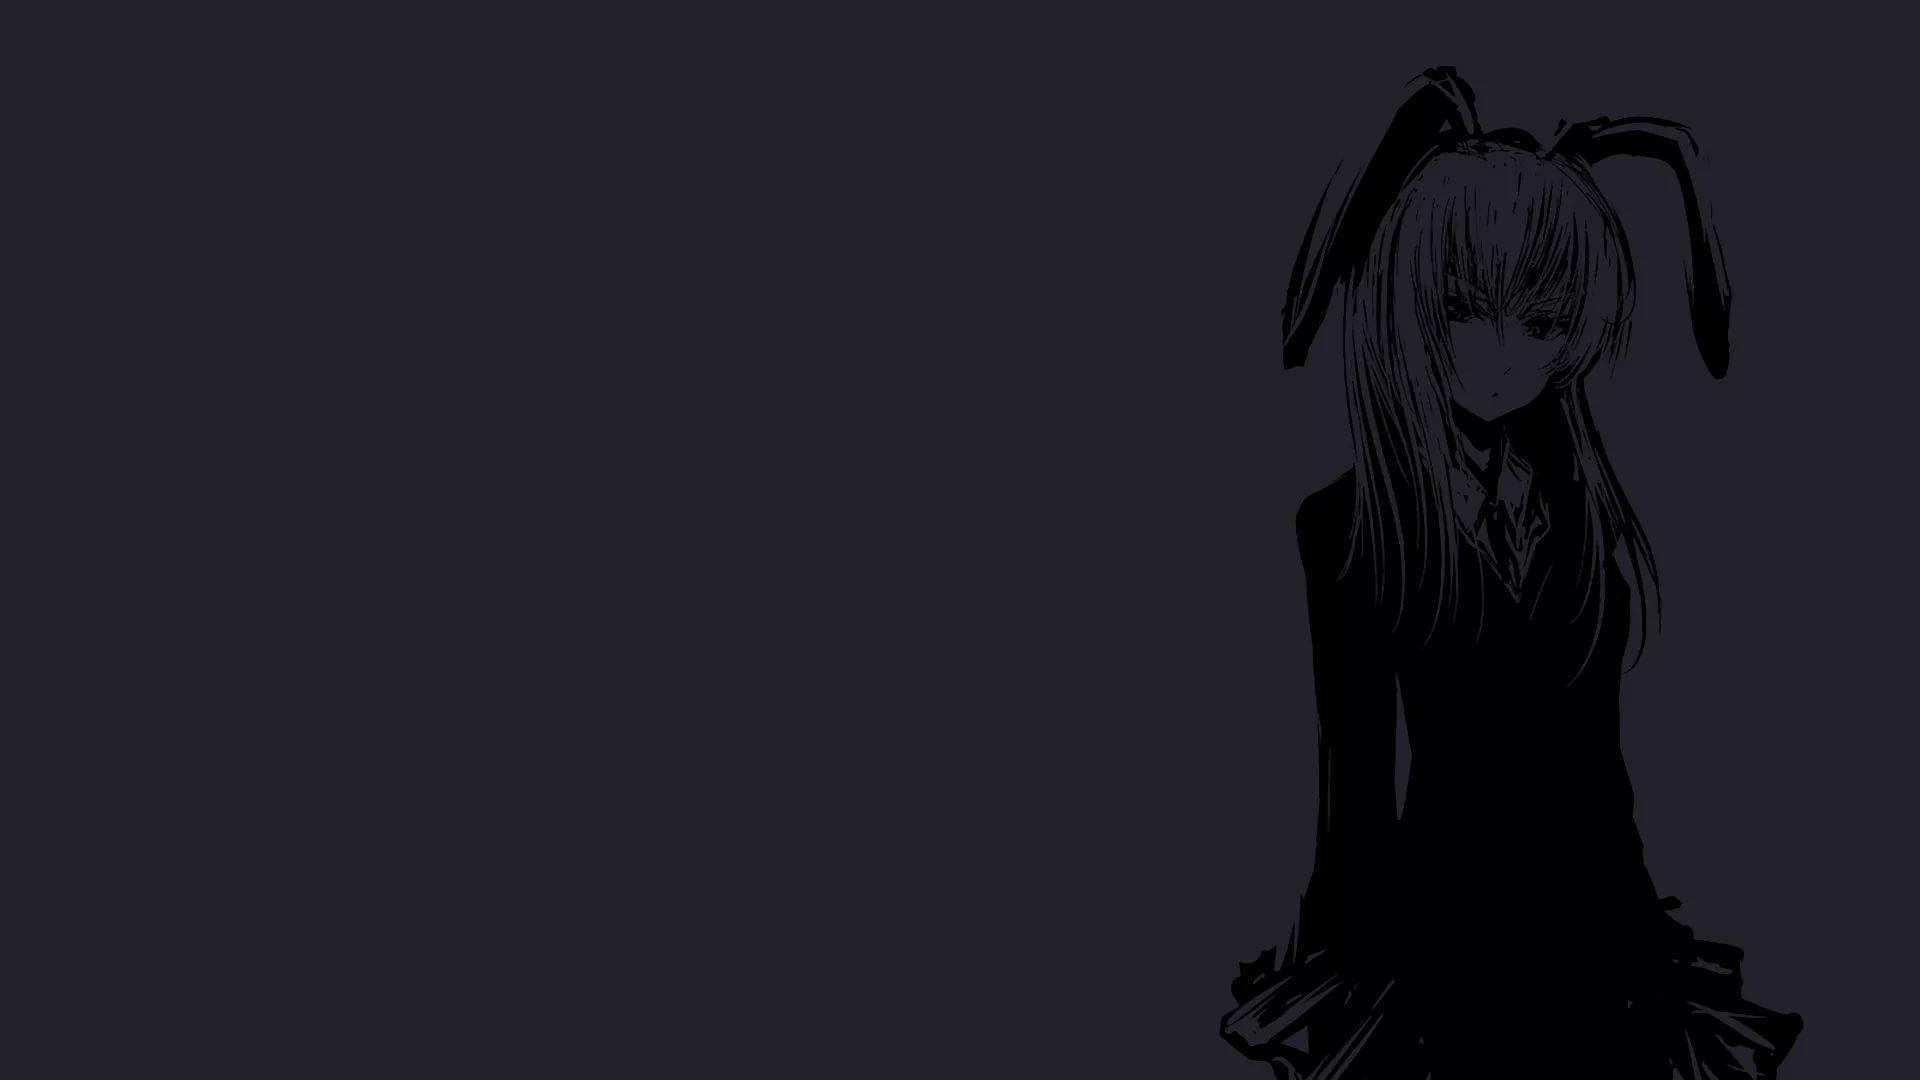 Anime PC Black HD Wallpapers - Wallpaper Cave